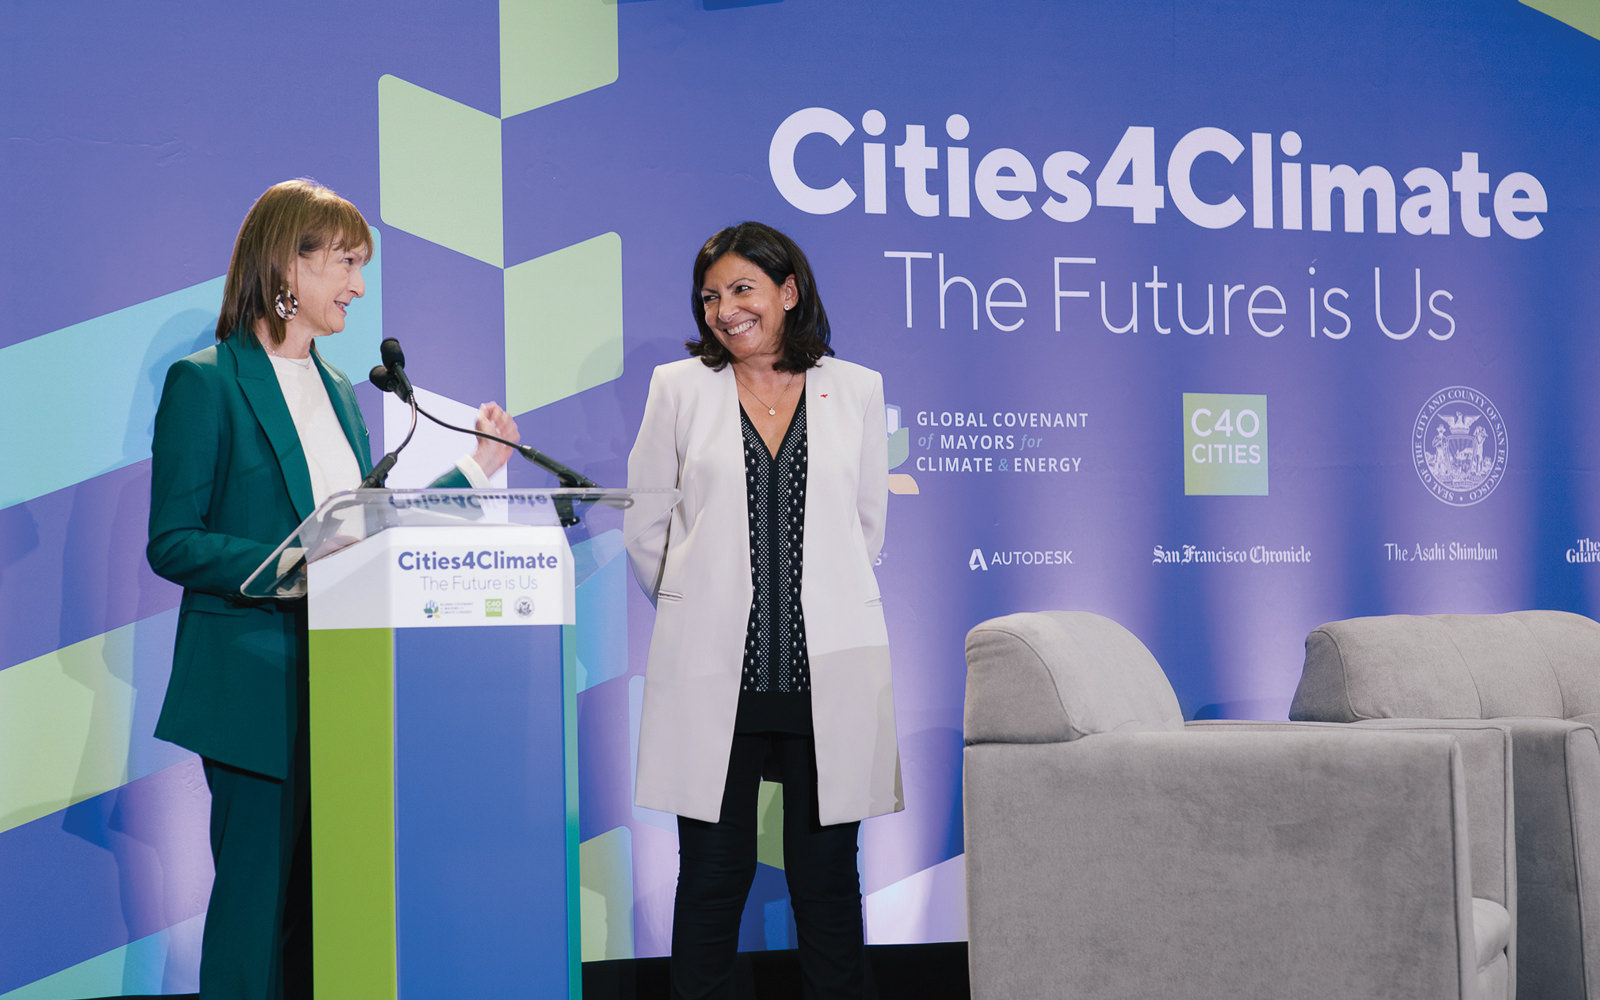 Speaking with Paris Mayor Anne Hidalgo at a C40 Cities Climate Leadership Group event